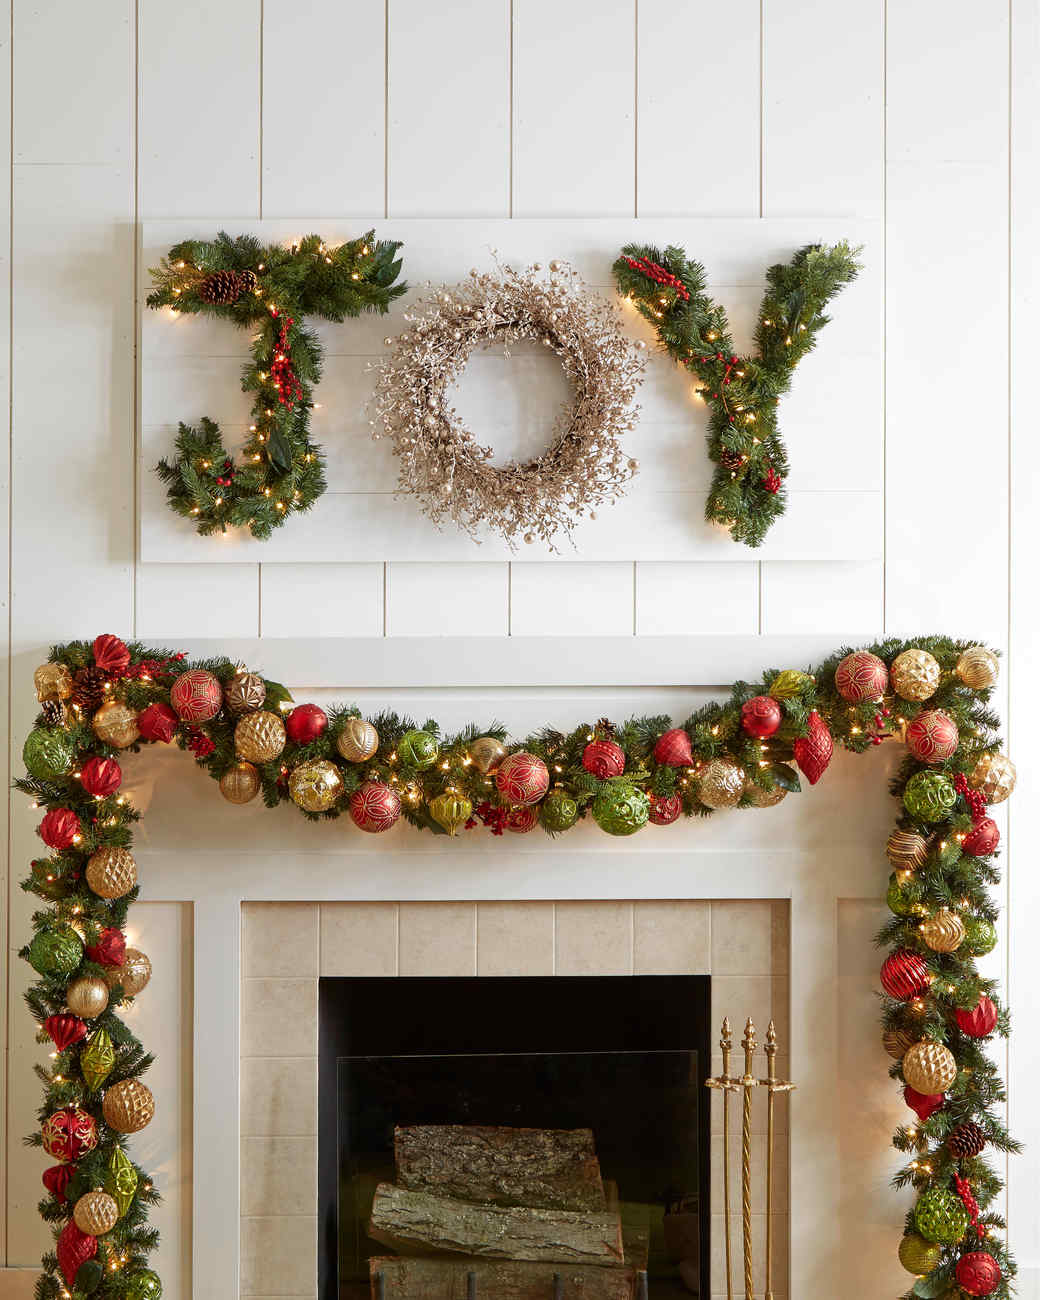 The Most Joyous Christmas Wreath Sign | Martha Stewart